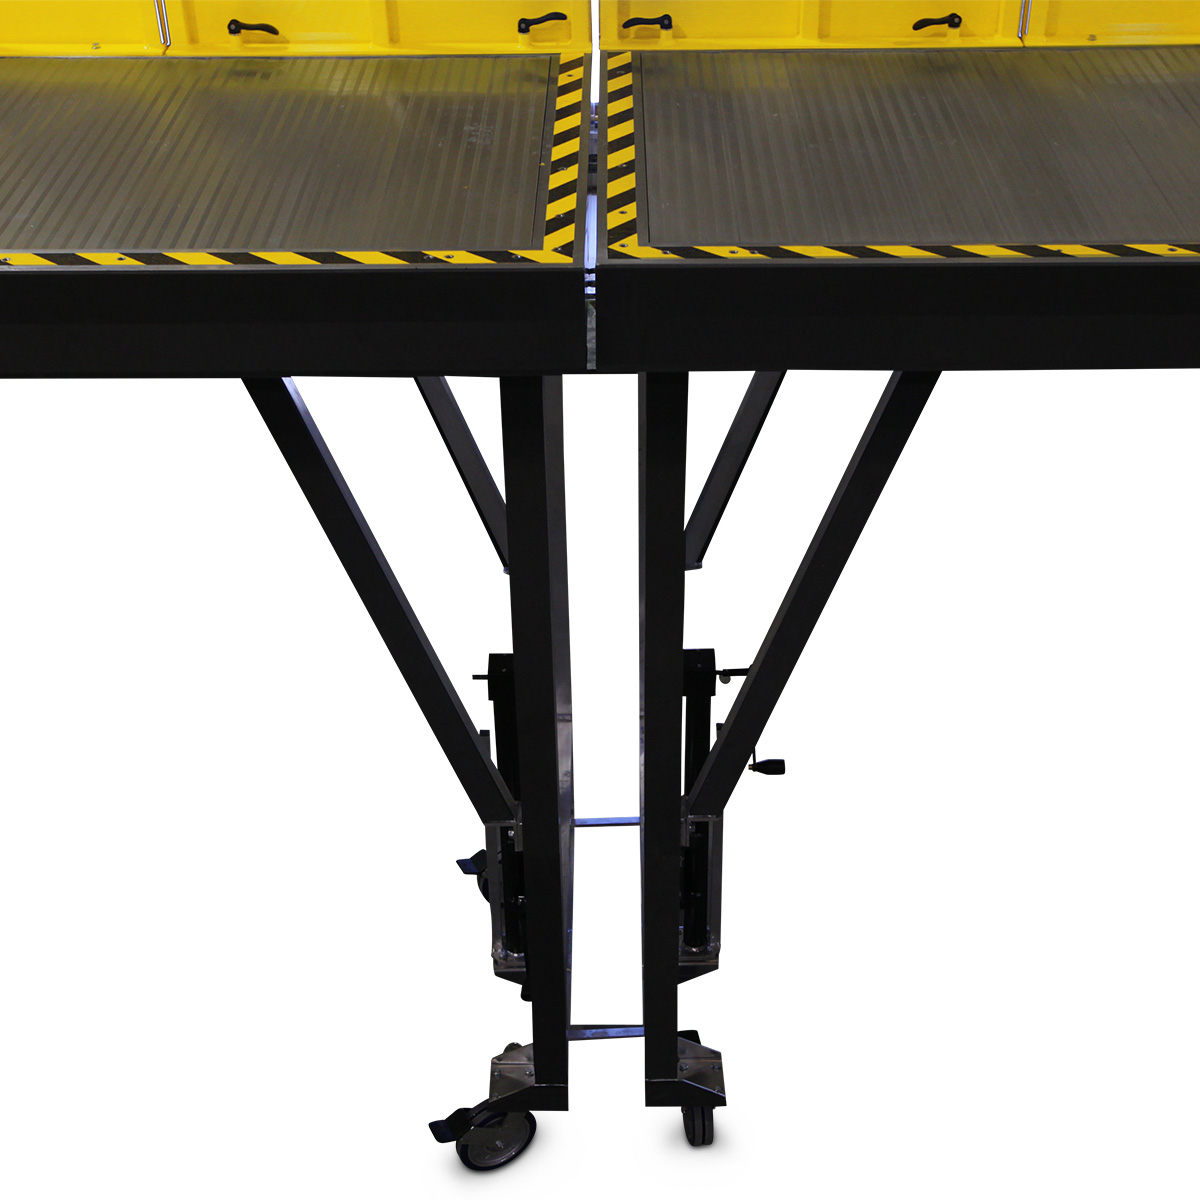 CH47 Chinook Helicopter – Daily Maintenance OSHA compliant, adjustable height mobile work stand with protective foam on all leading edges and link bars for leveling work surfaces while on uneven shop floors.